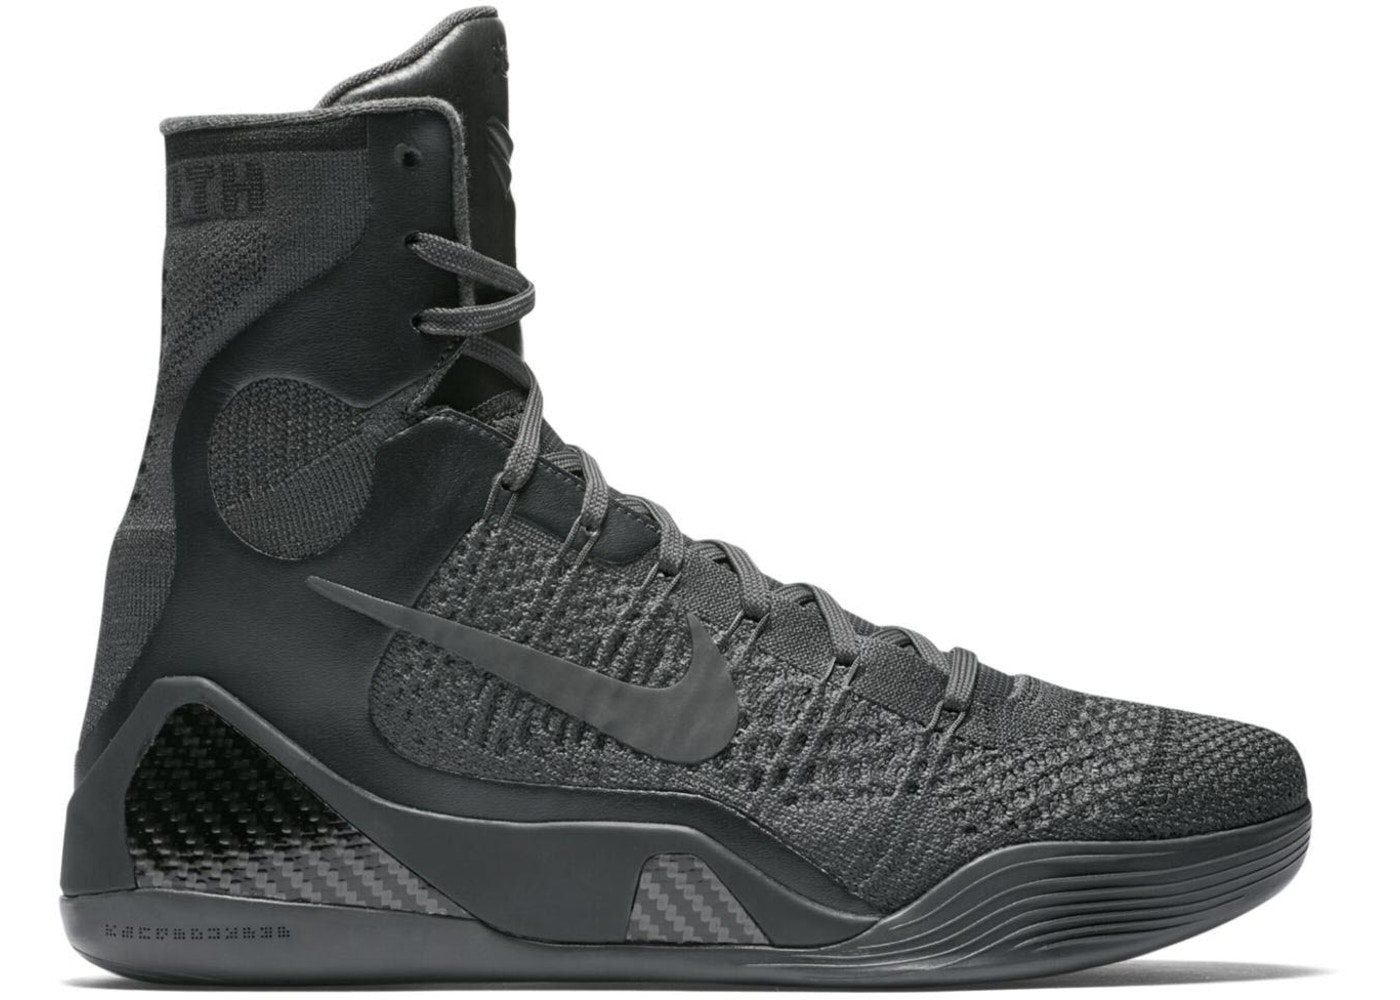 cheap for discount 4b709 20bf3 Kobe 9 Elite Black Mamba Collection Fade to Black - 869455-002